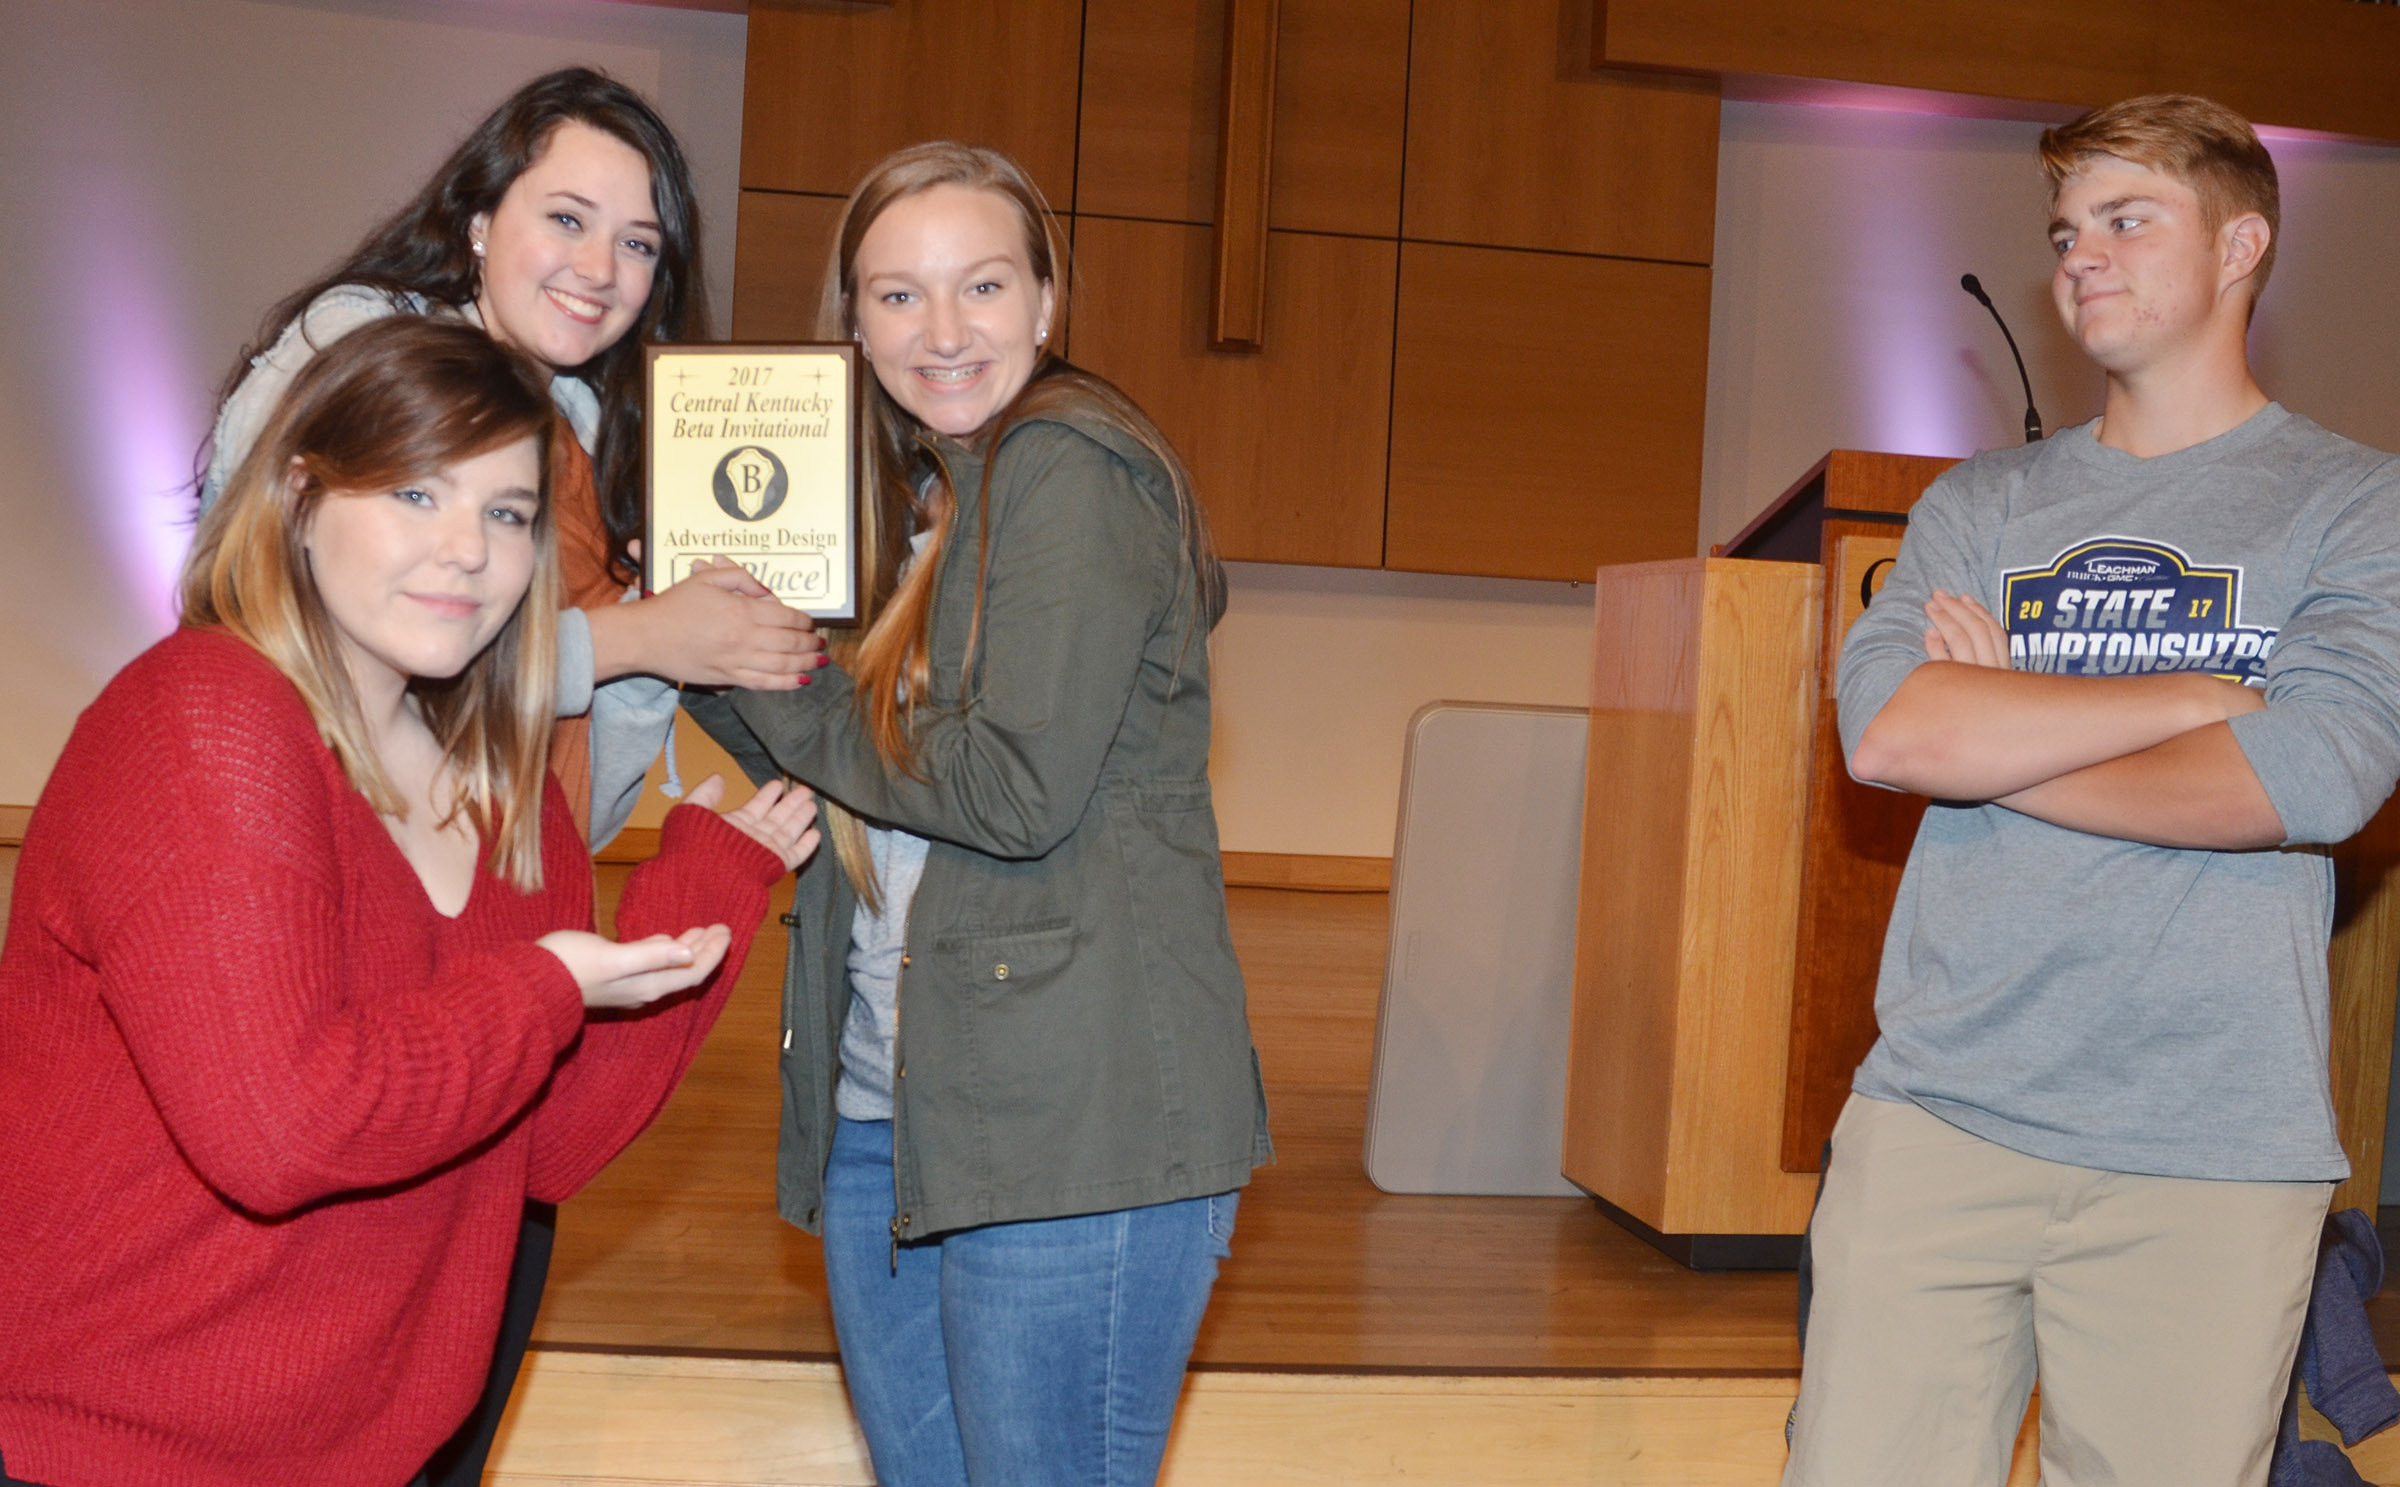 CHS Beta Club members brought home several awards on Thursday, Oct. 19, at the annual Central Kentucky Beta Invitational. From left, seniors Sara Farmer, Missy Vanorder and Madison Dial hold their third place advertising design plaque as their teammate, senior Alex Doss, looks on.